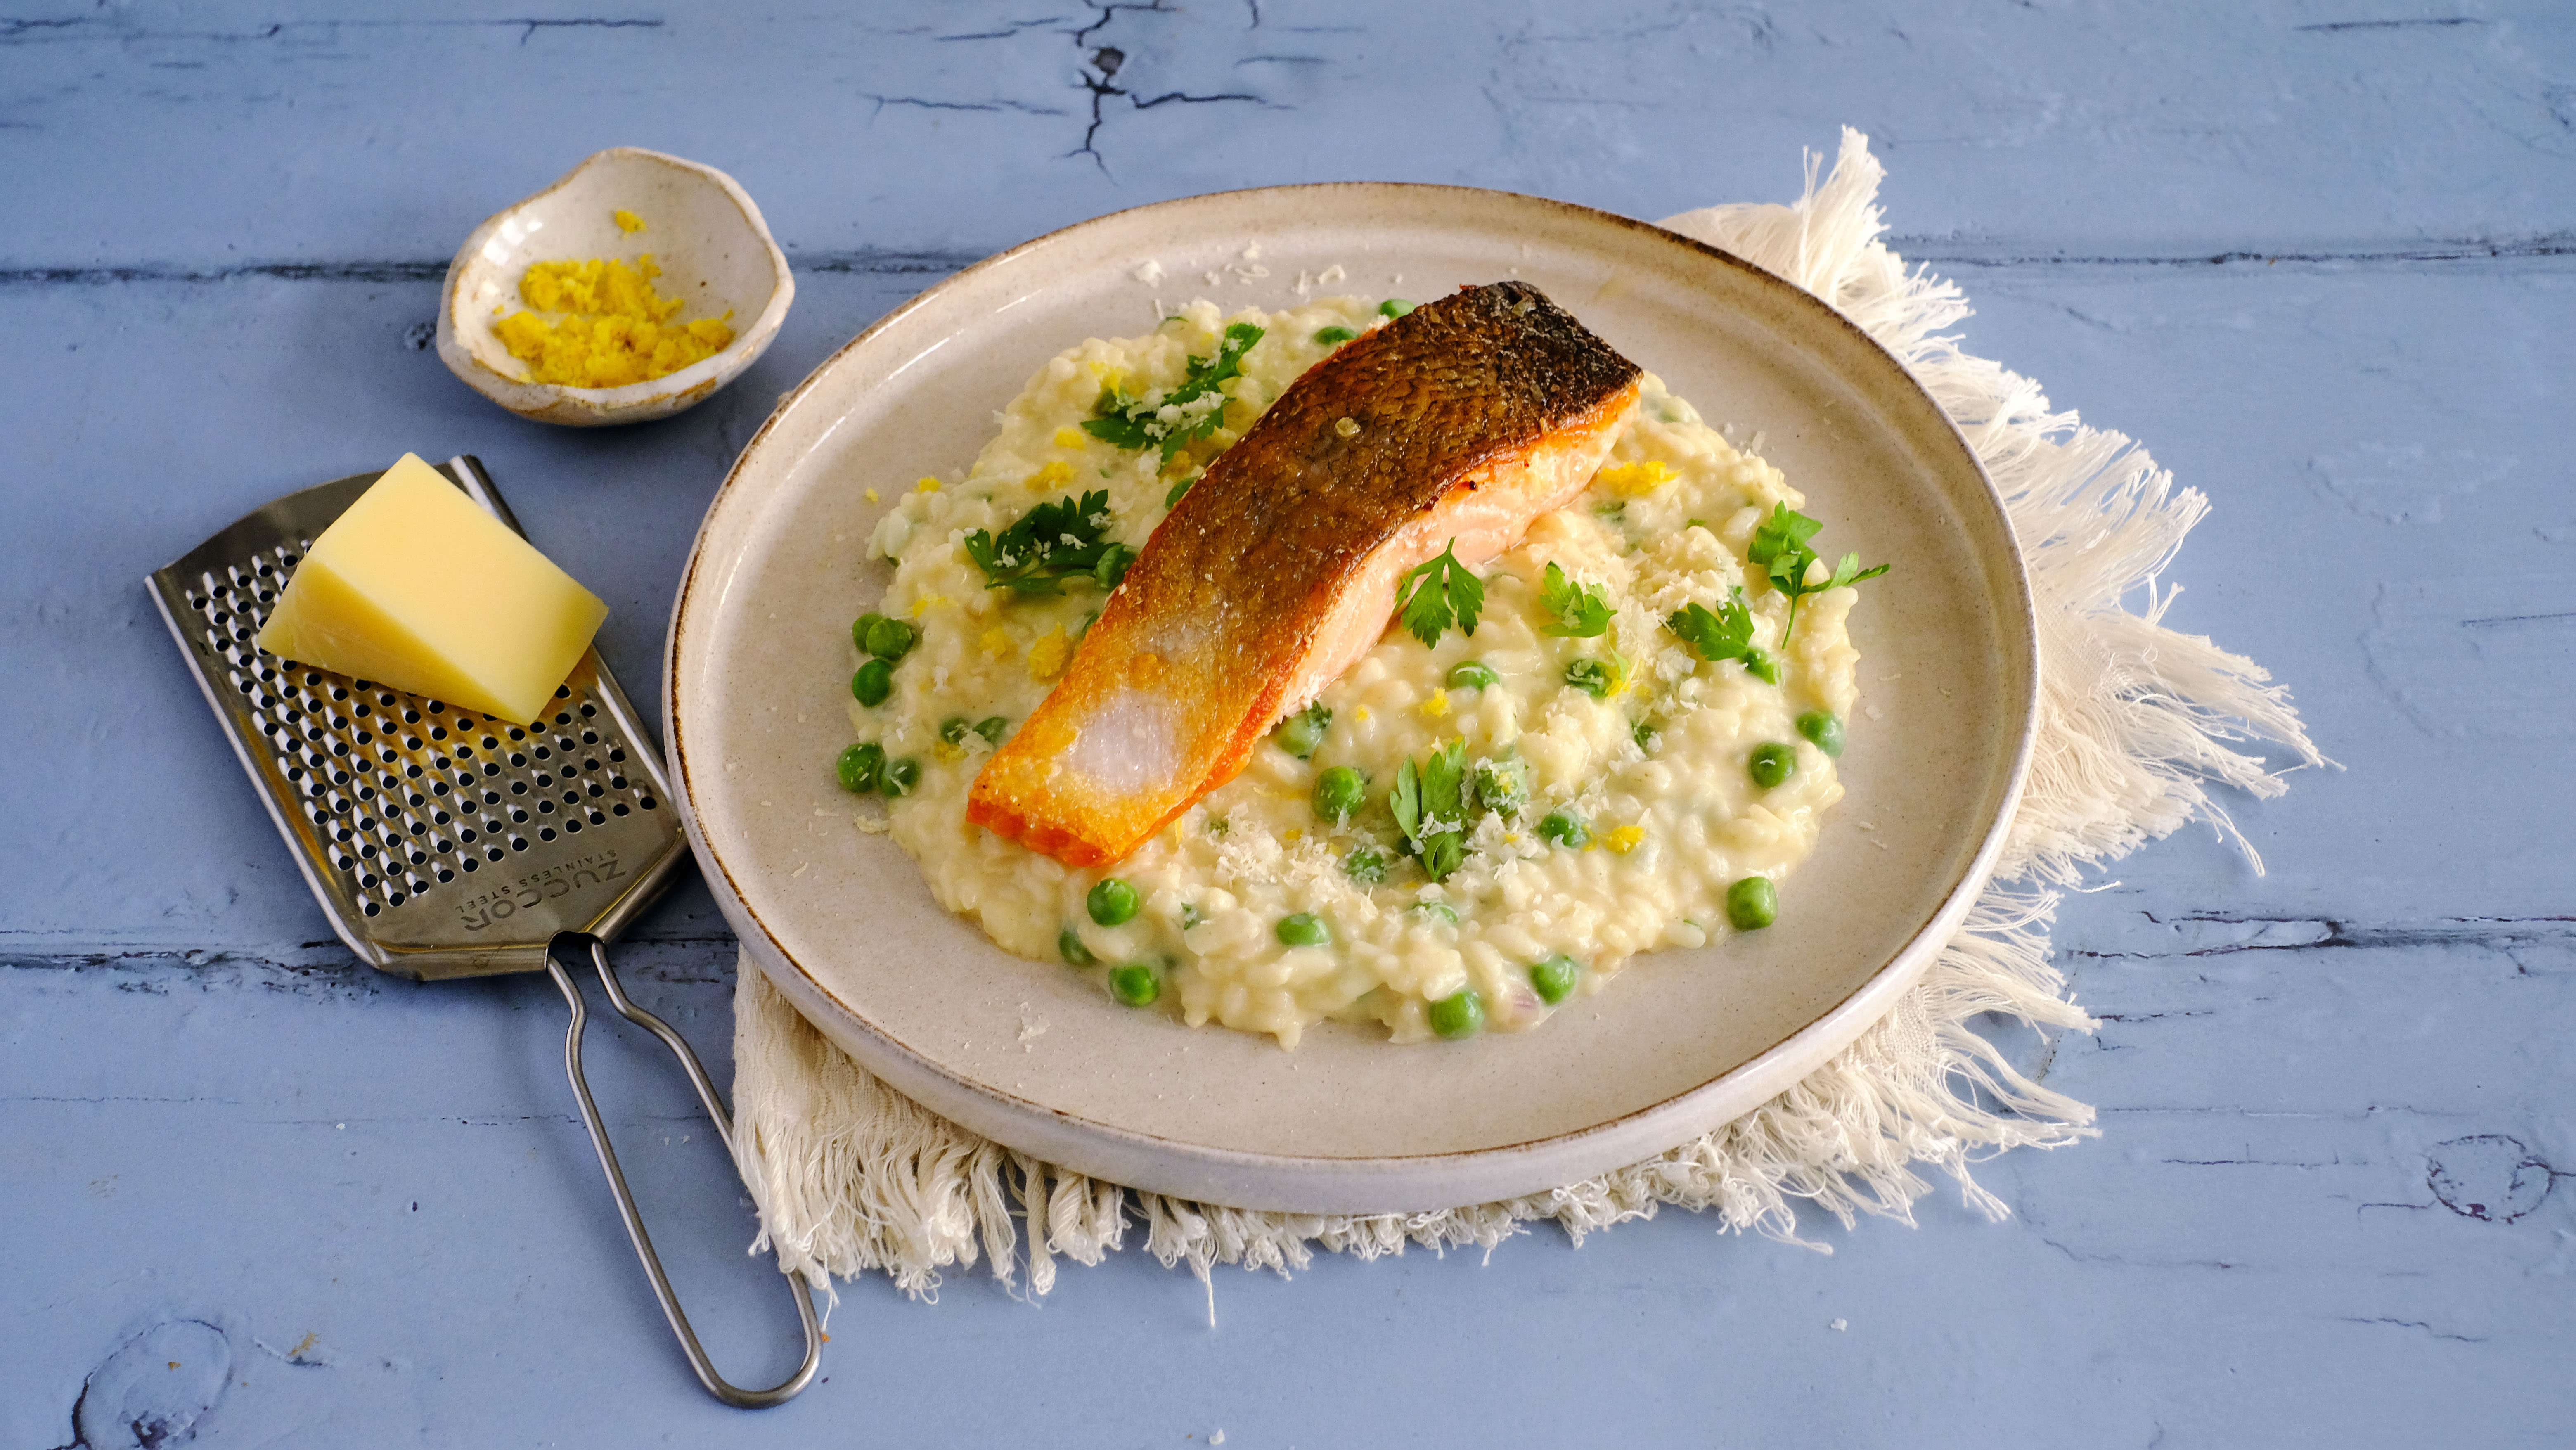 Pan-fried Salmon with Lemon Risotto